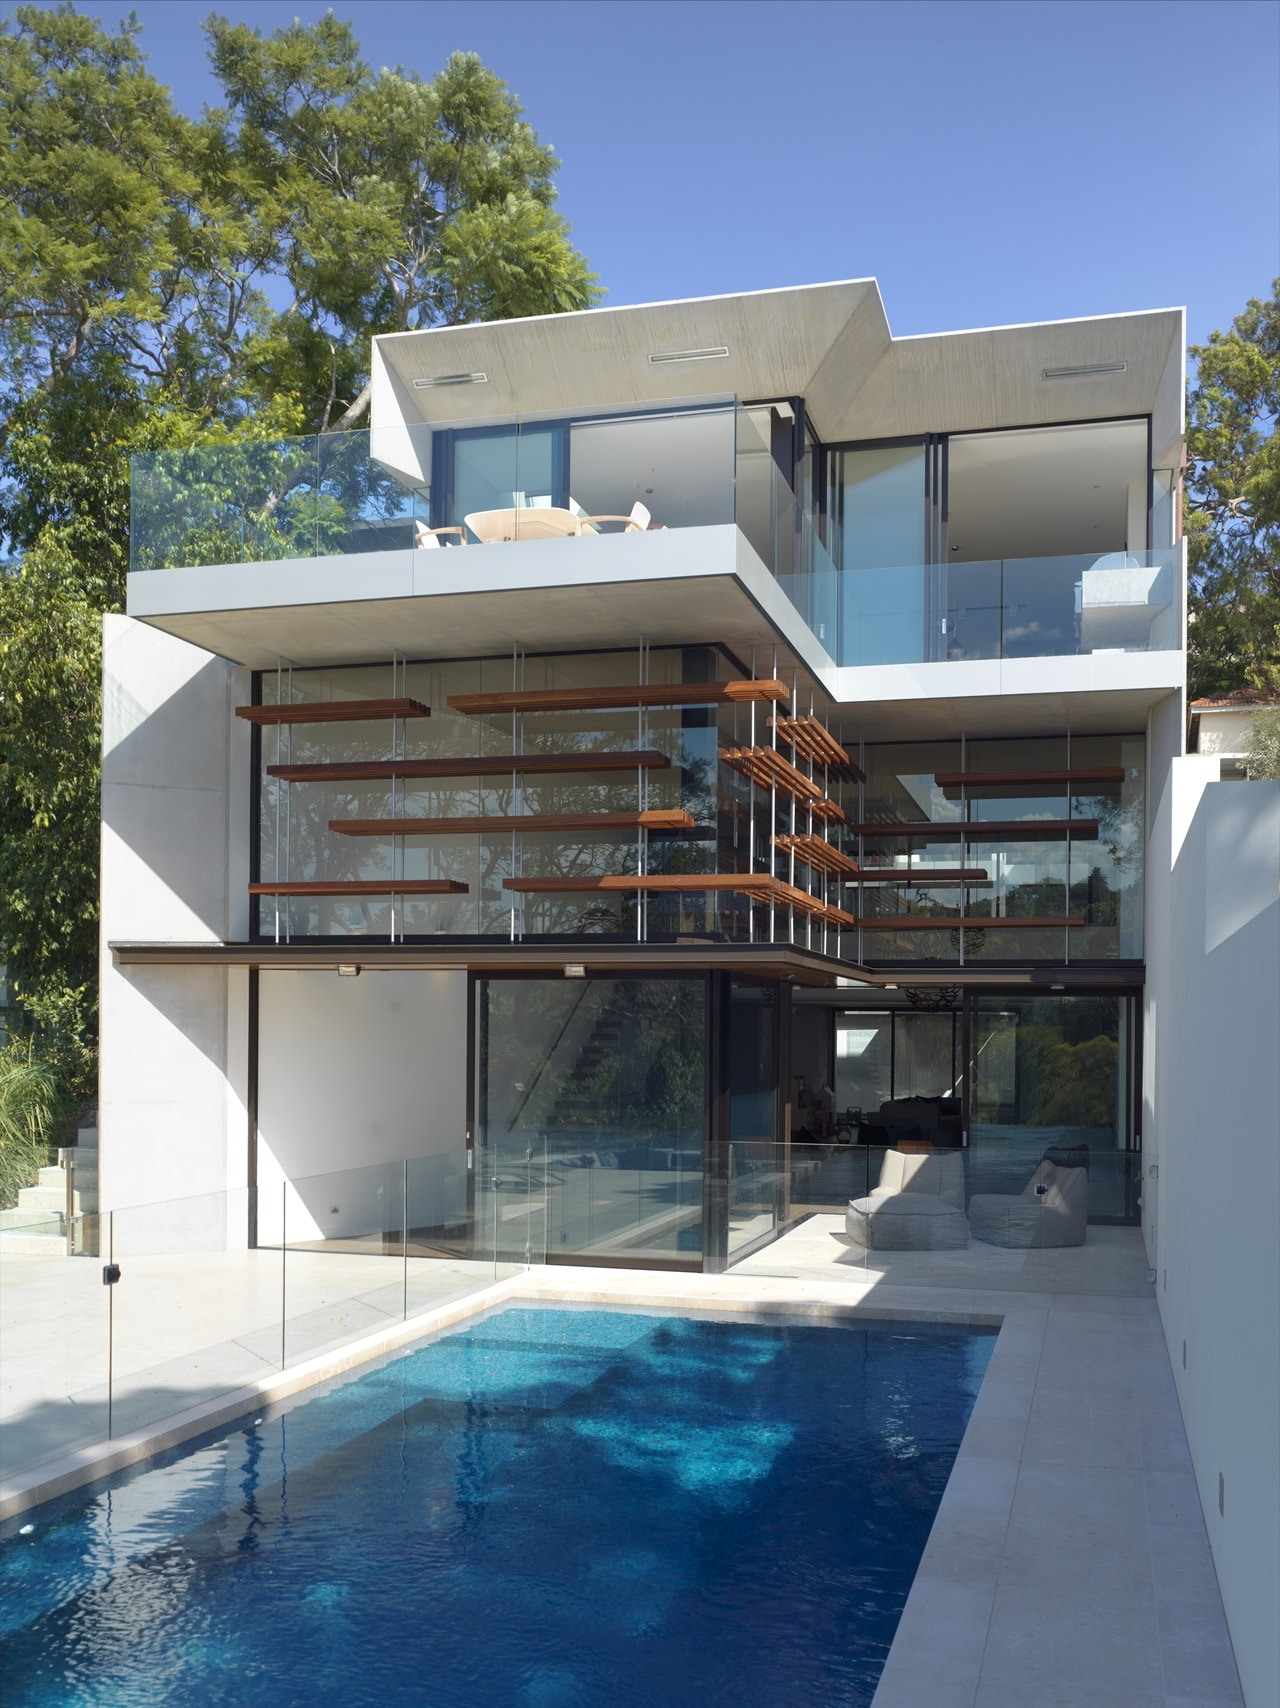 This sustainable house design on sloped land is lesson on modern living Architecture Beast 10